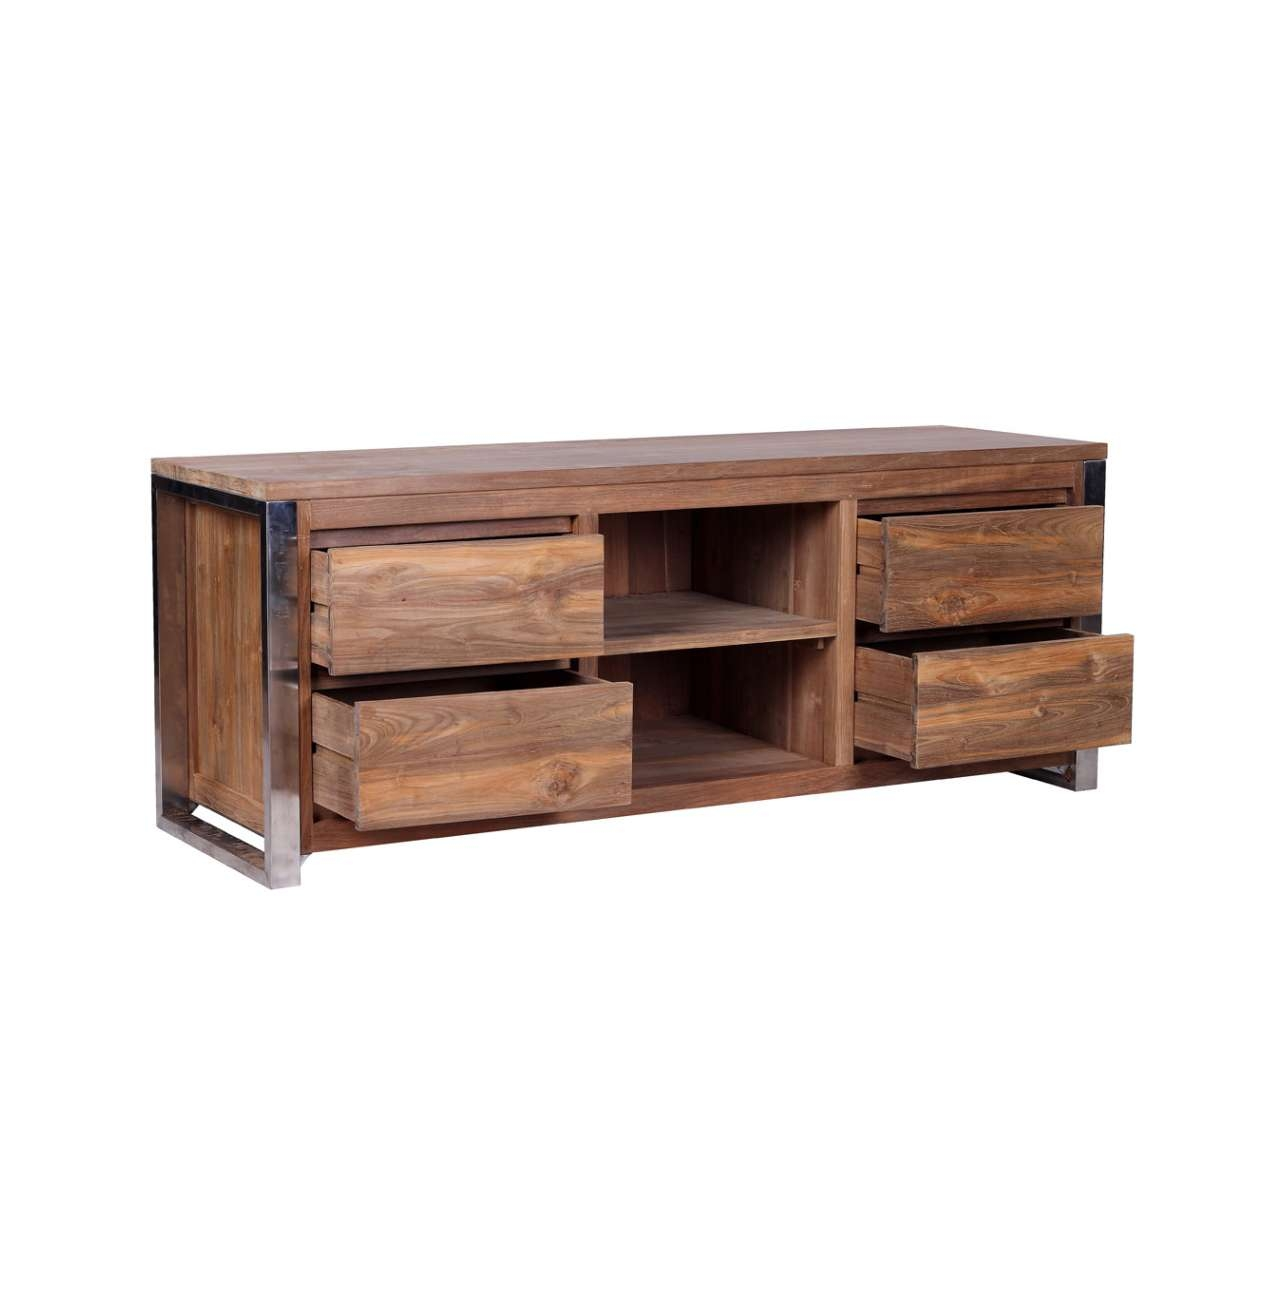 Rarem Reclaimed Wood Tv Stand – Reclaimed Teak And Stainless Steel Intended For Wood And Metal Tv Stands (View 10 of 15)